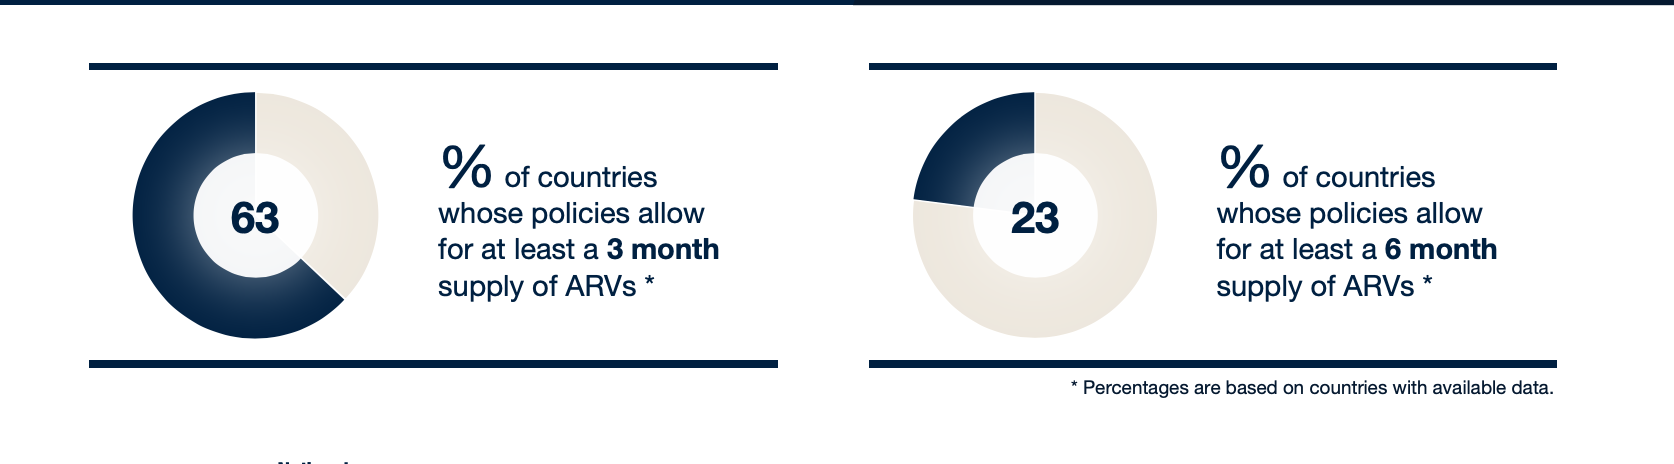 63% of countries allow at least a 3 month supply of ARVs; 23% of countries allow at leas a 6 month supply of ARVs